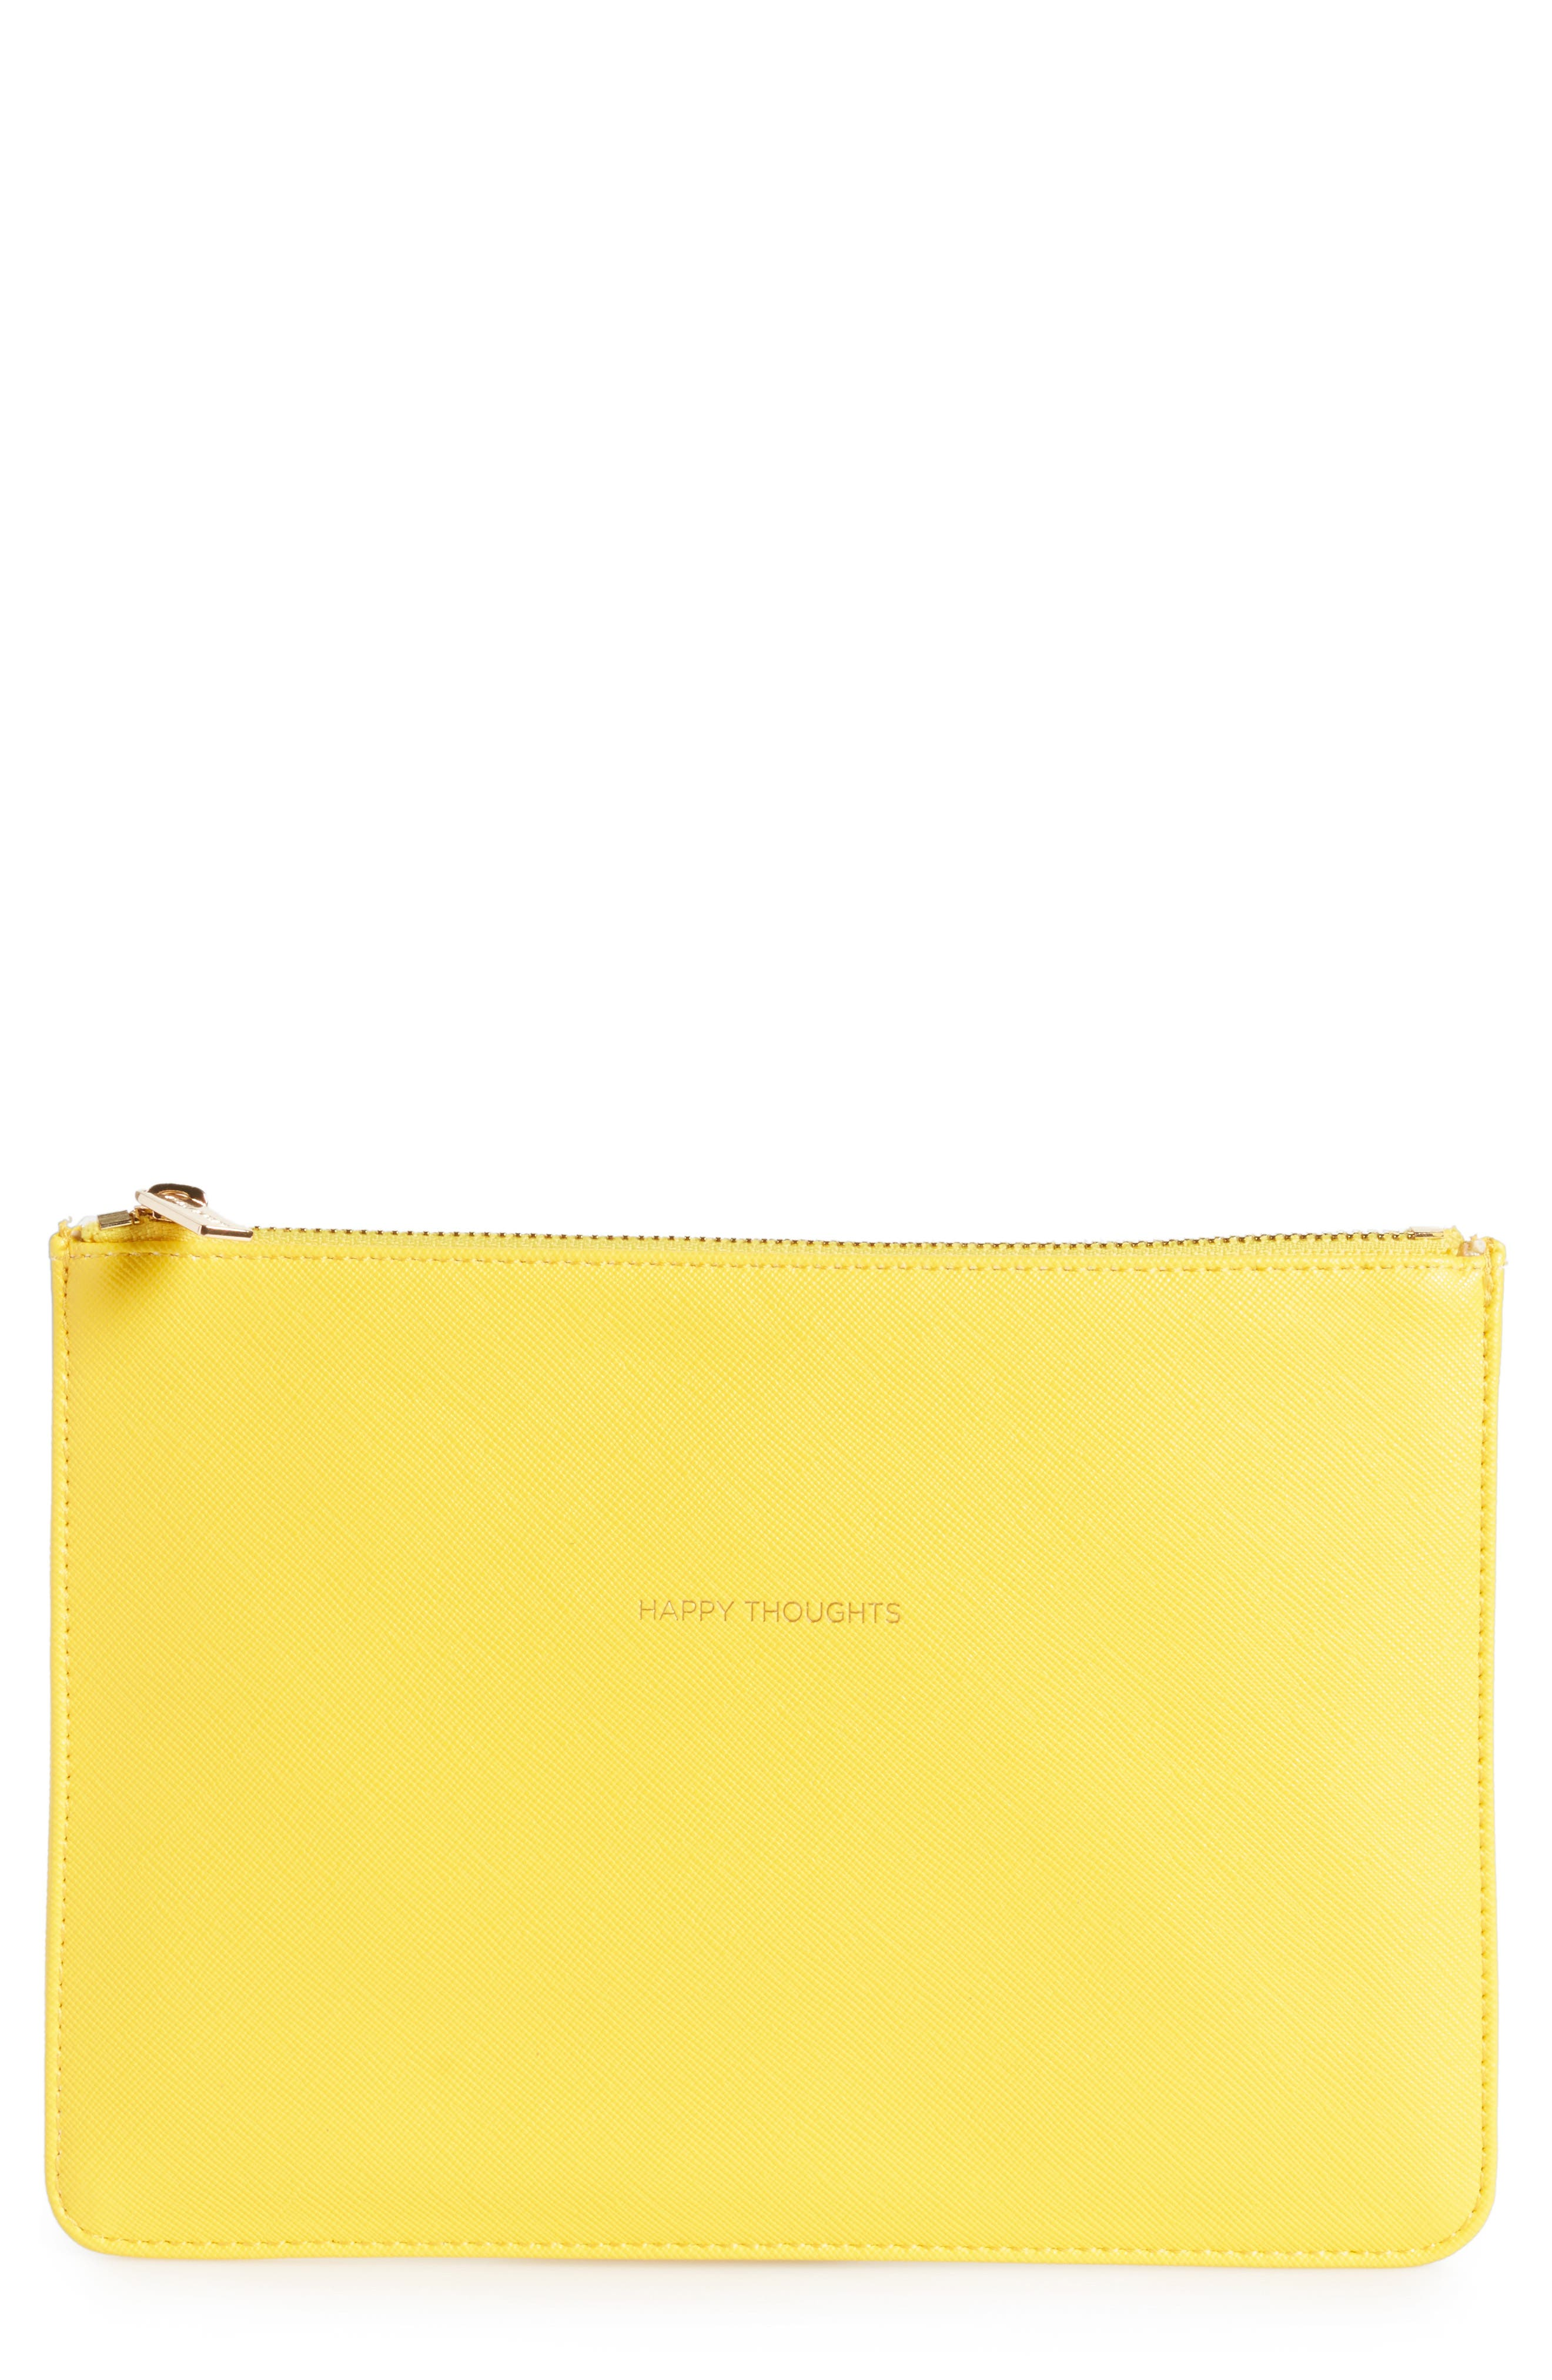 Main Image - Estella Bartlett Happy Thoughts Medium Faux Leather Pouch